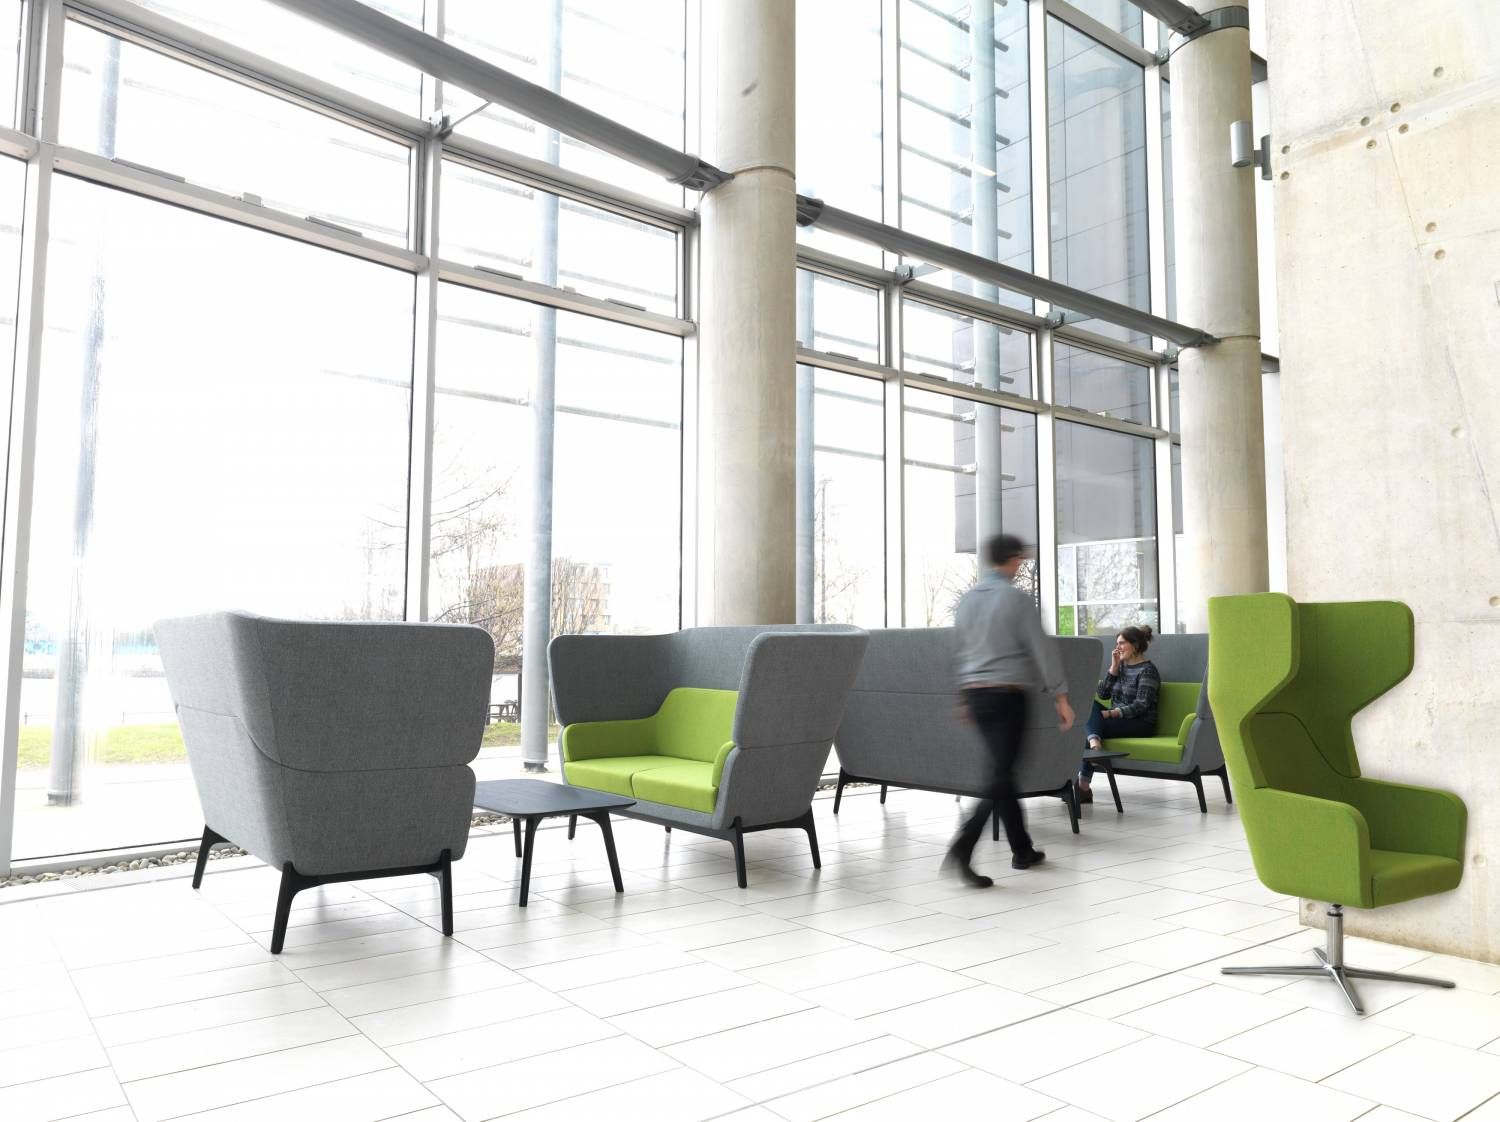 Ocee Design   Our Products · Office InteriorsCommercial Interiors